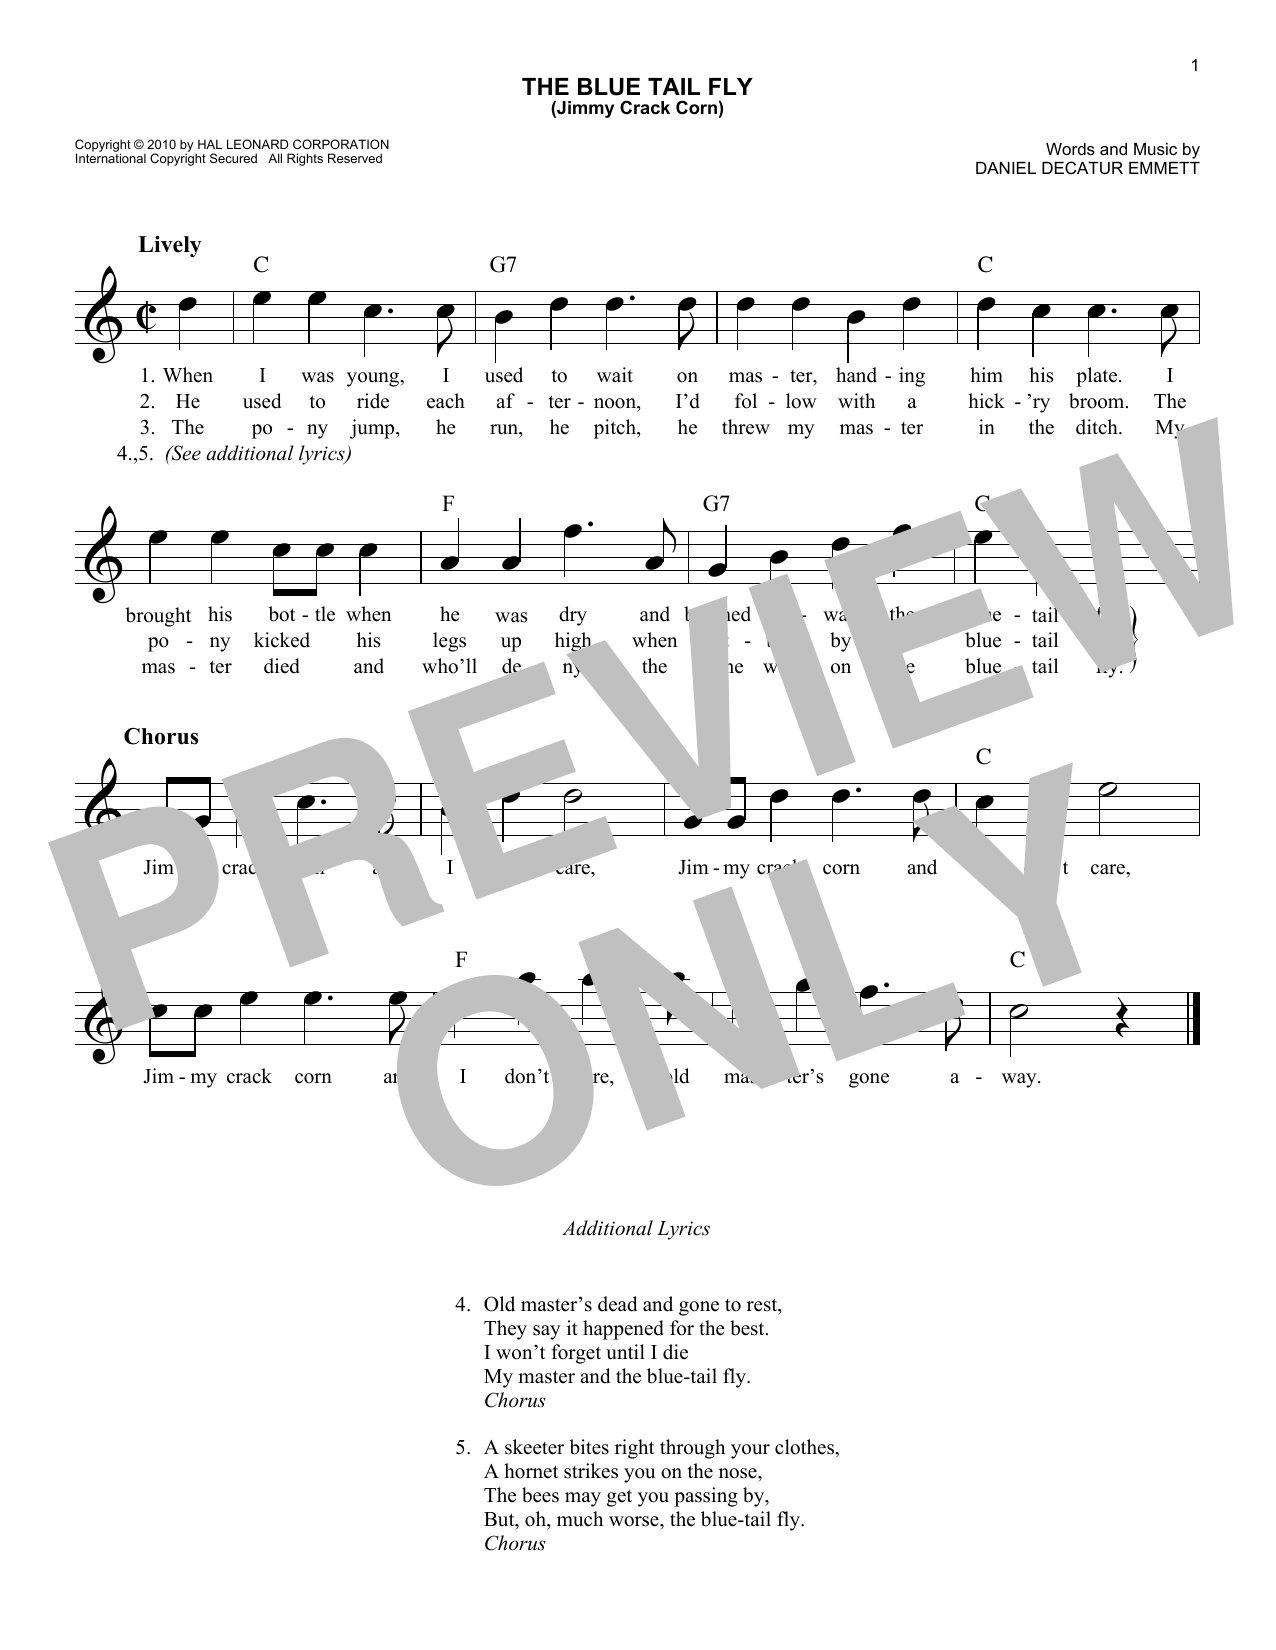 The Blue Tail Fly (Jimmy Crack Corn) Sheet Music